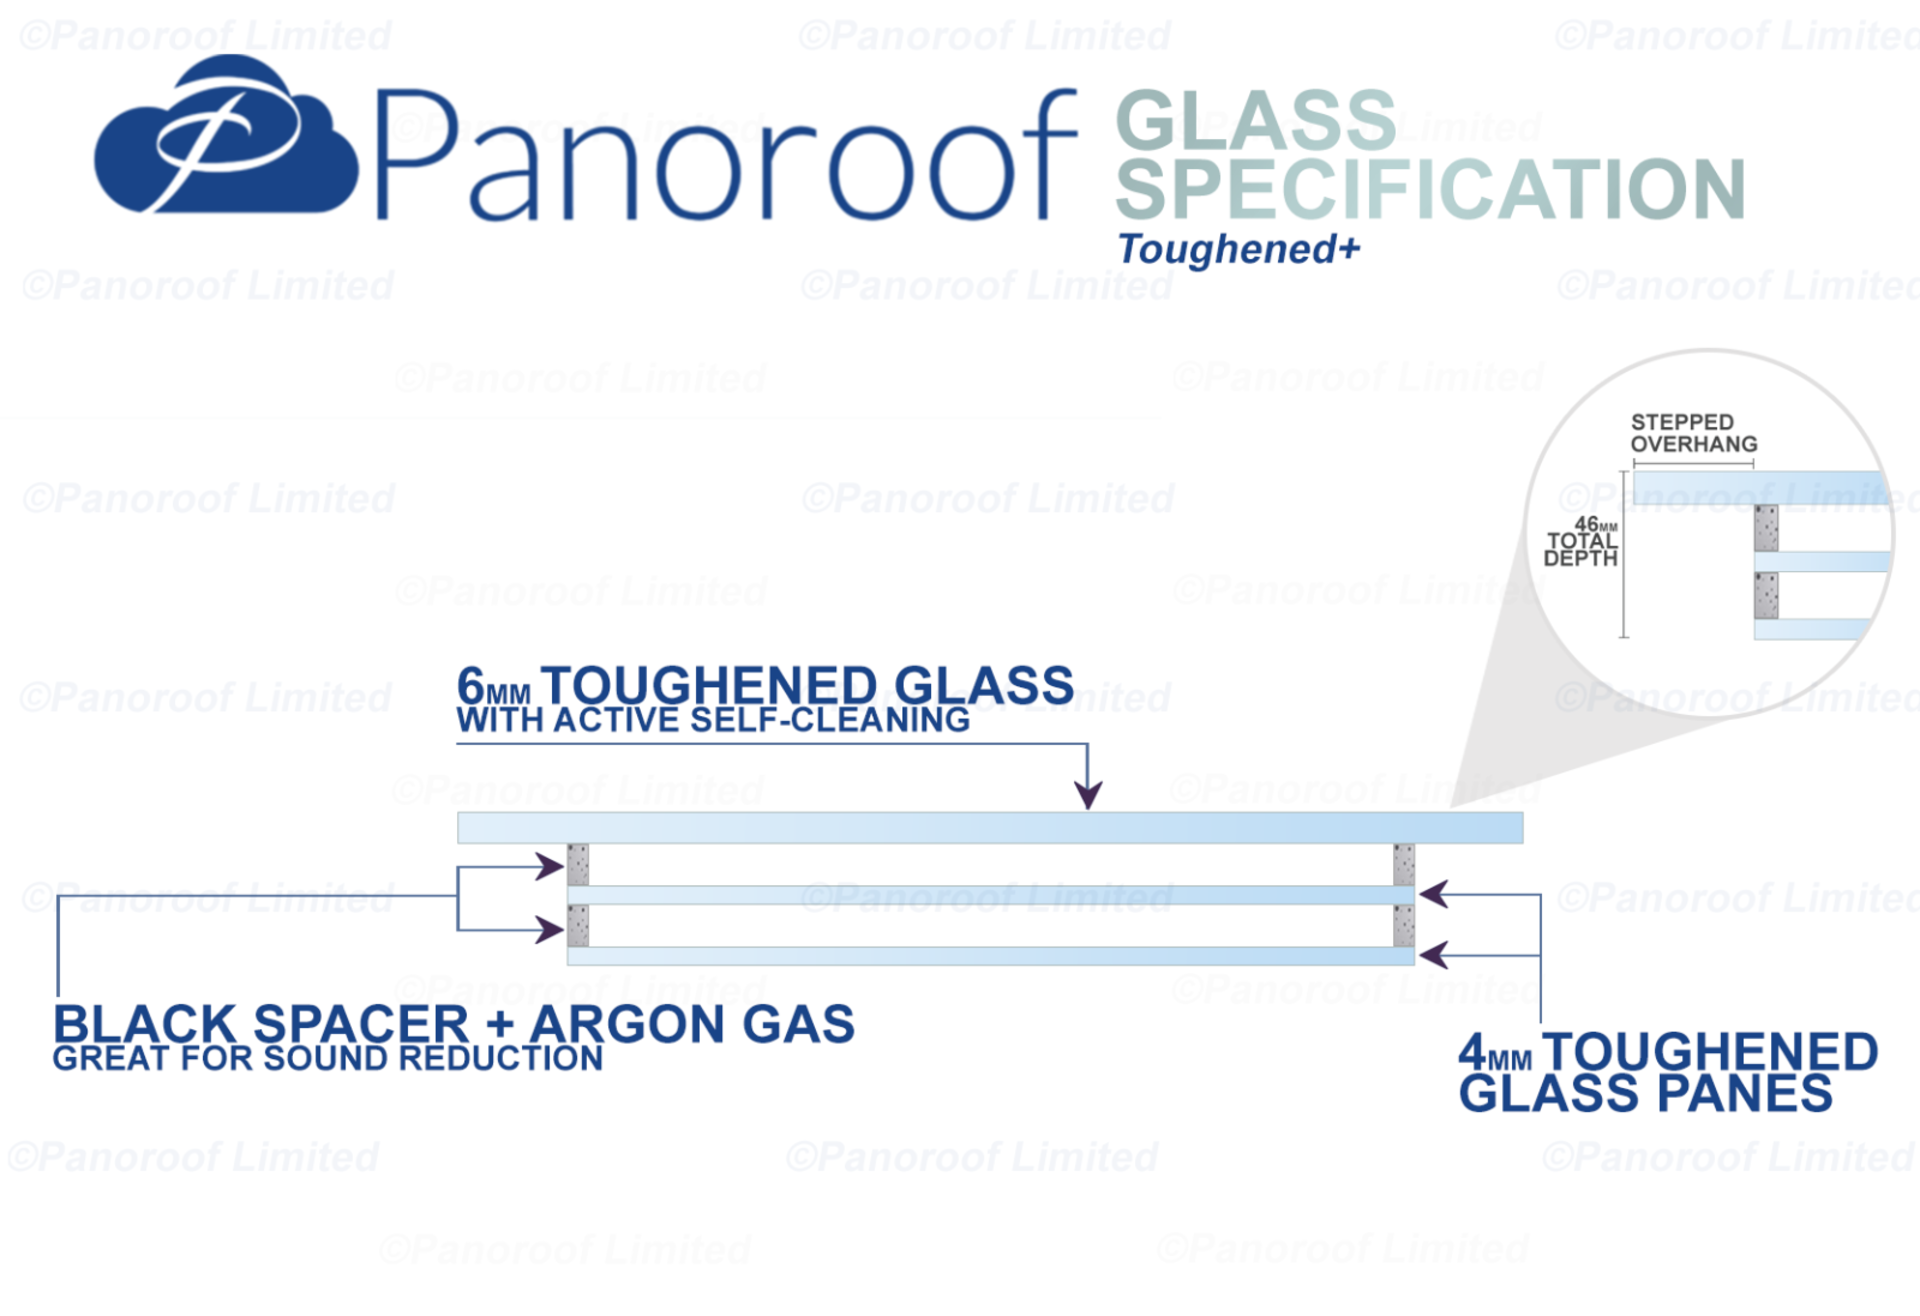 """""""""""""""Panoroof Triple Glazed Self Cleaning 600x1200mm (inside Size Visable glass area) Seamless Glass - Image 5 of 6"""